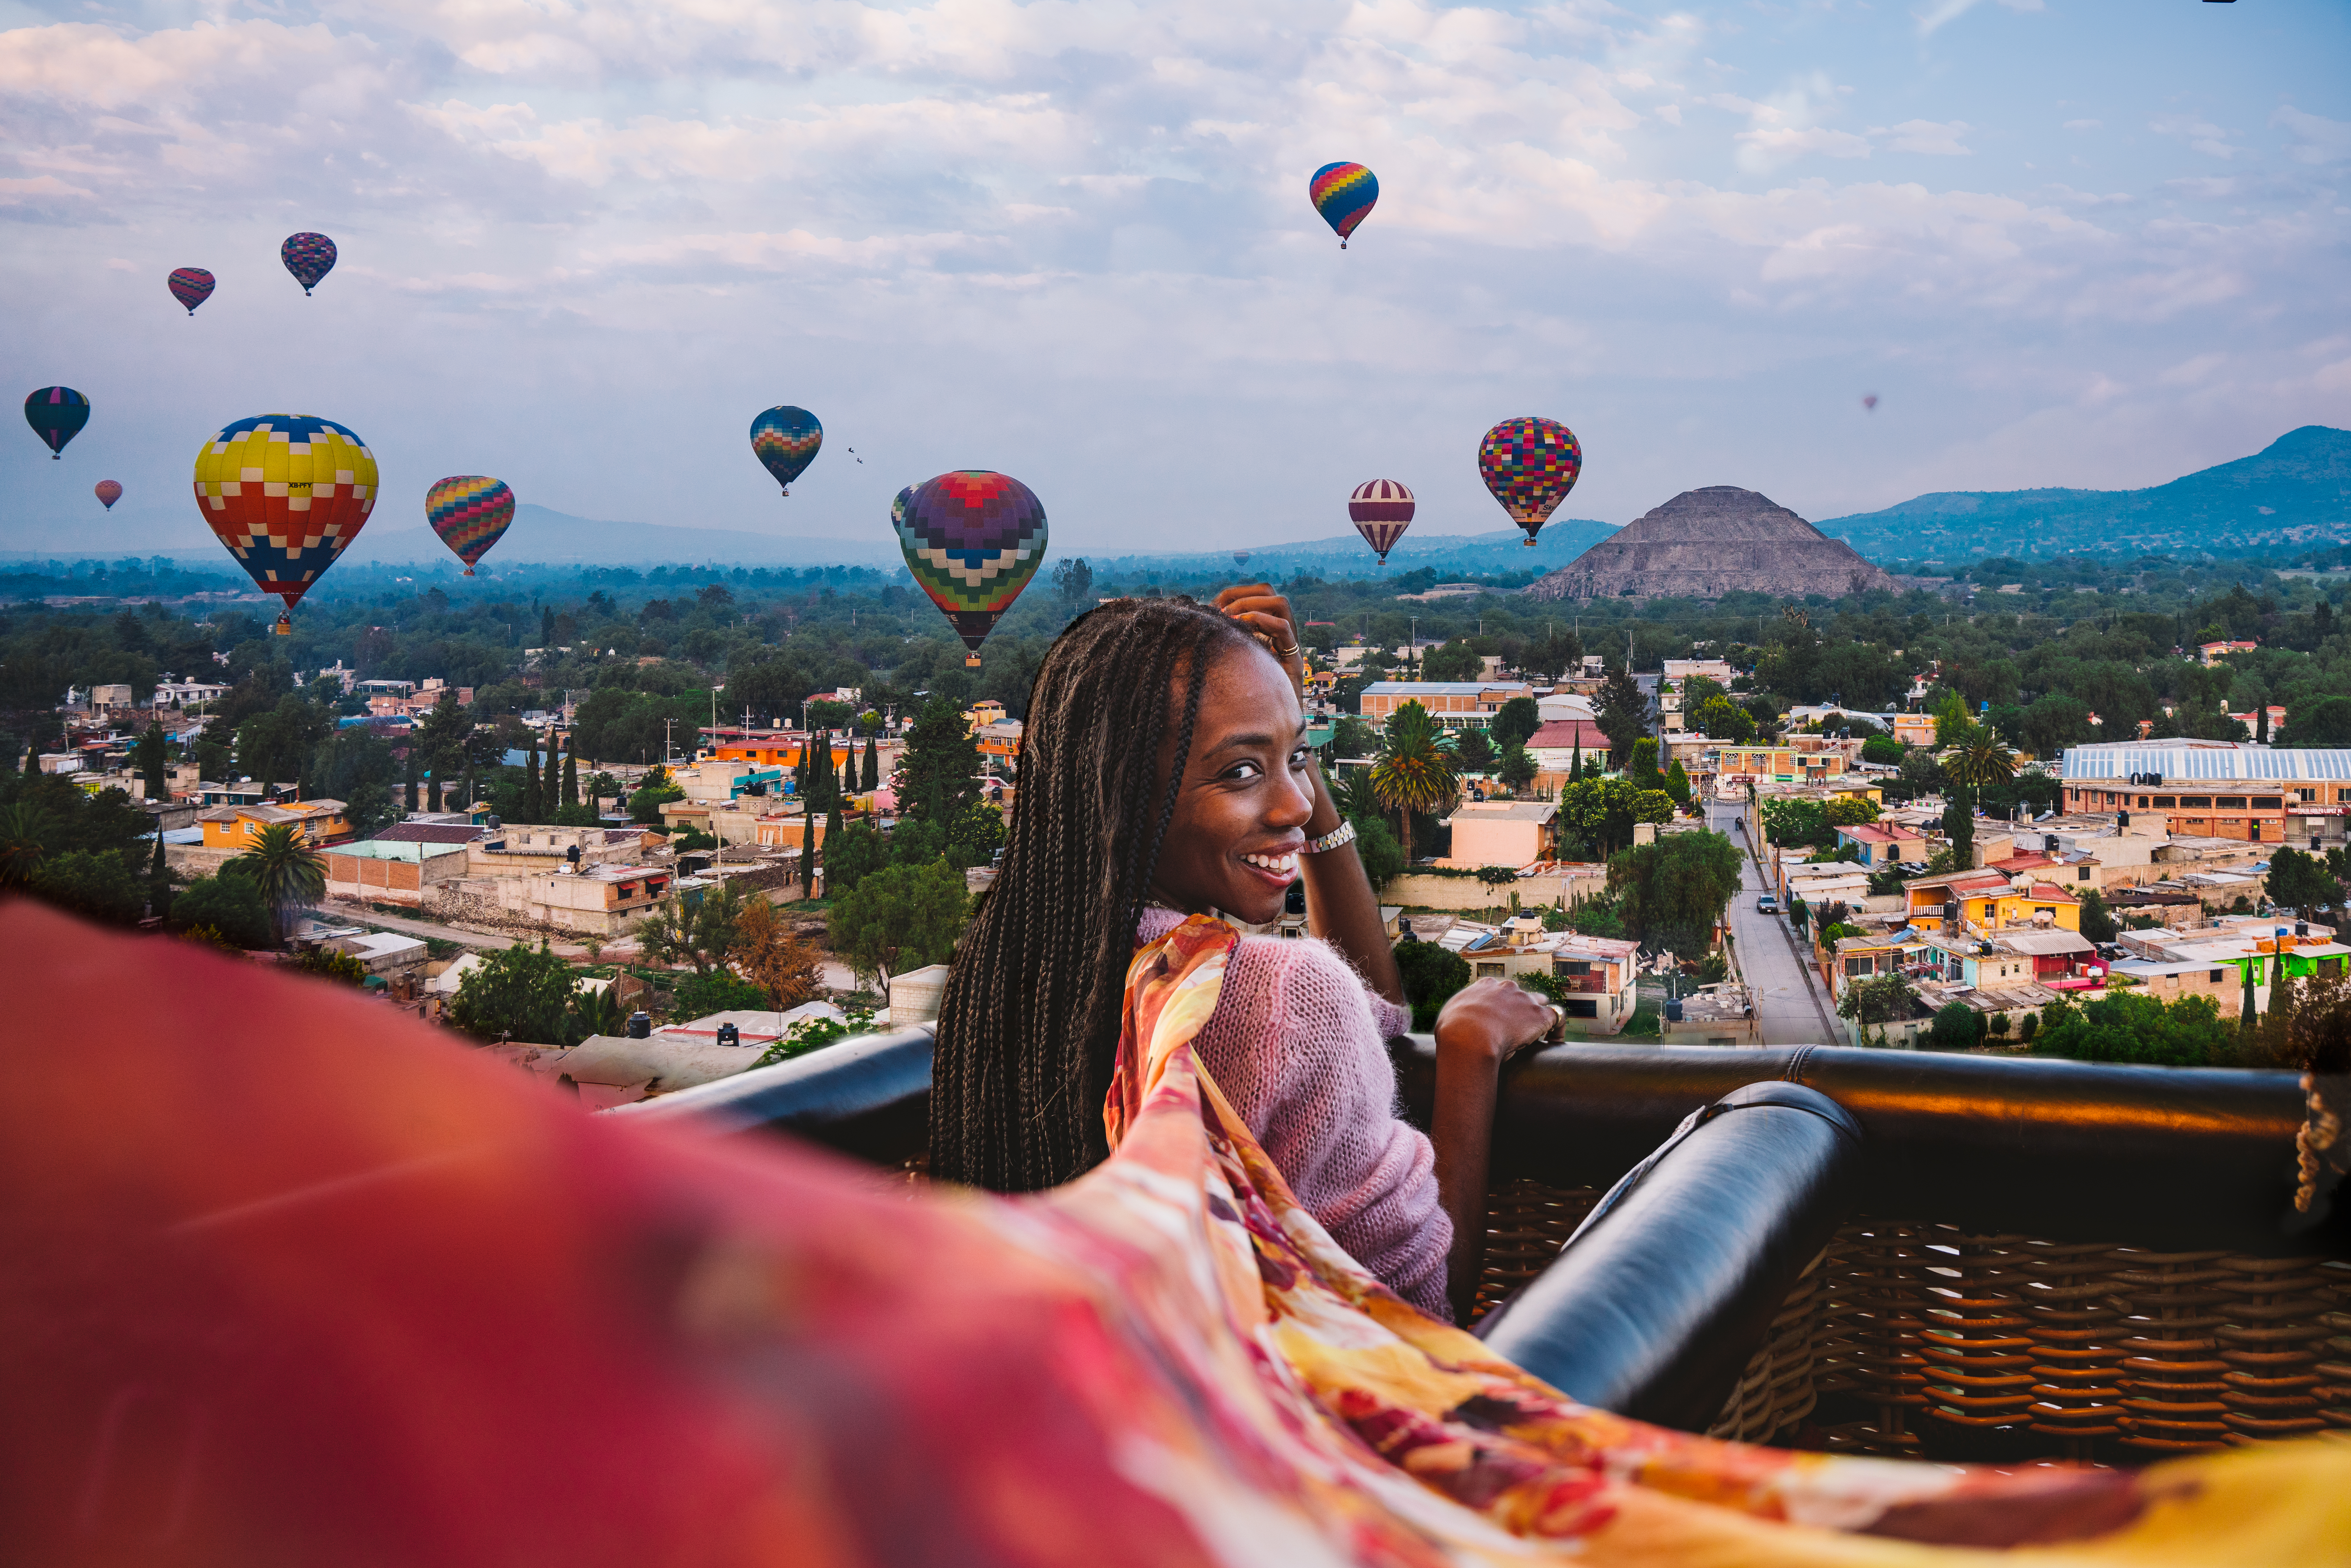 Girl and floating top, hot air balloons, teotihuacan pyramids in front